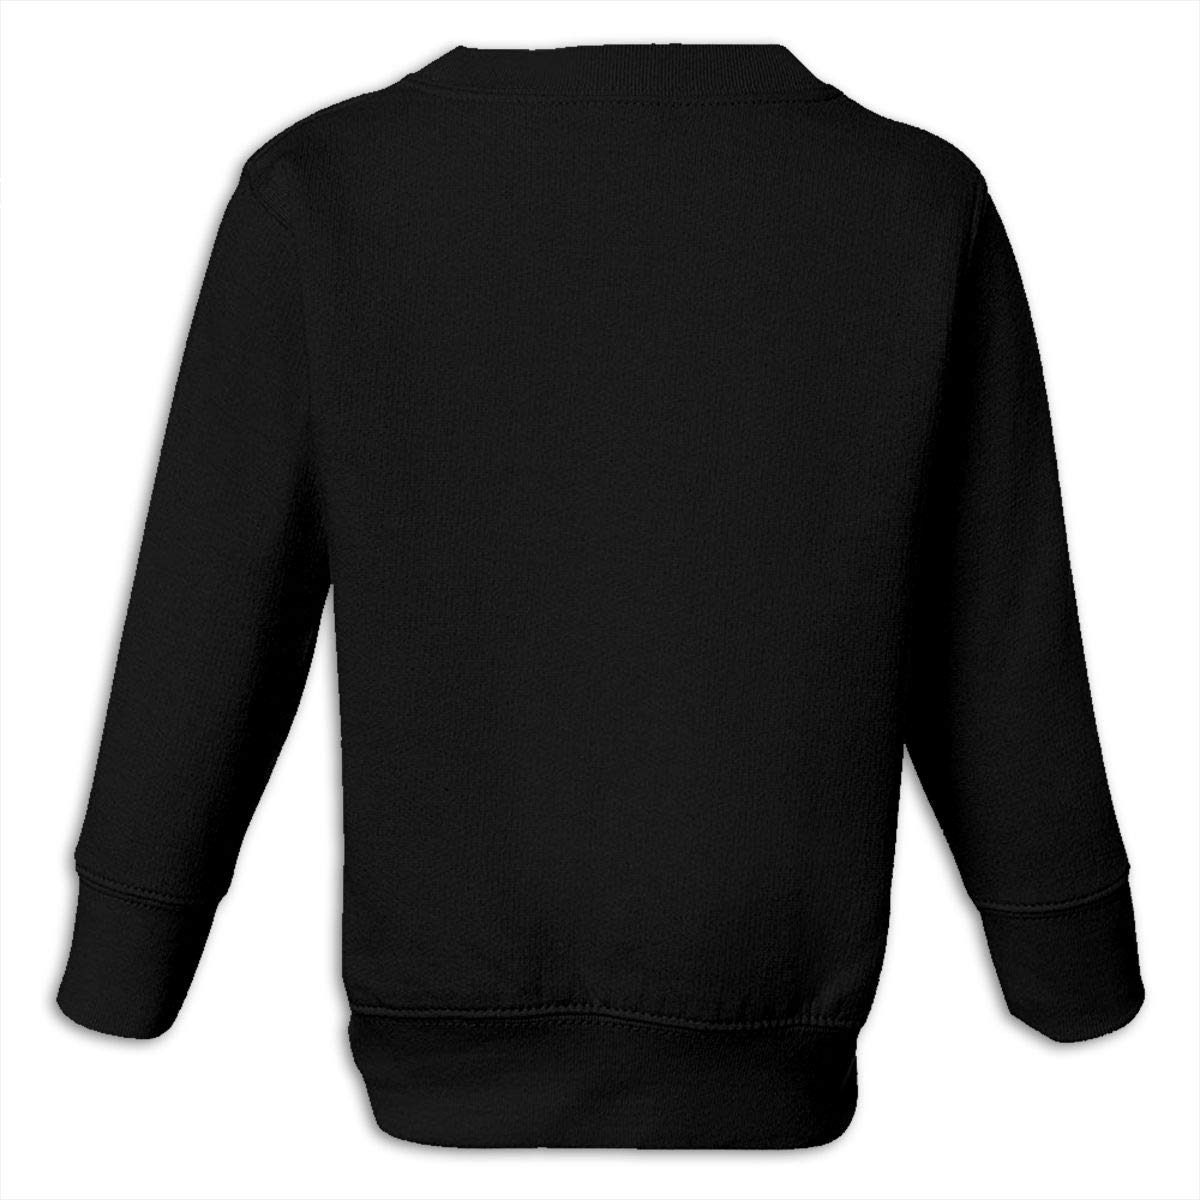 Camper Welcome Juvenile Unisex Cotton Long Sleeve Round Neck Pullover